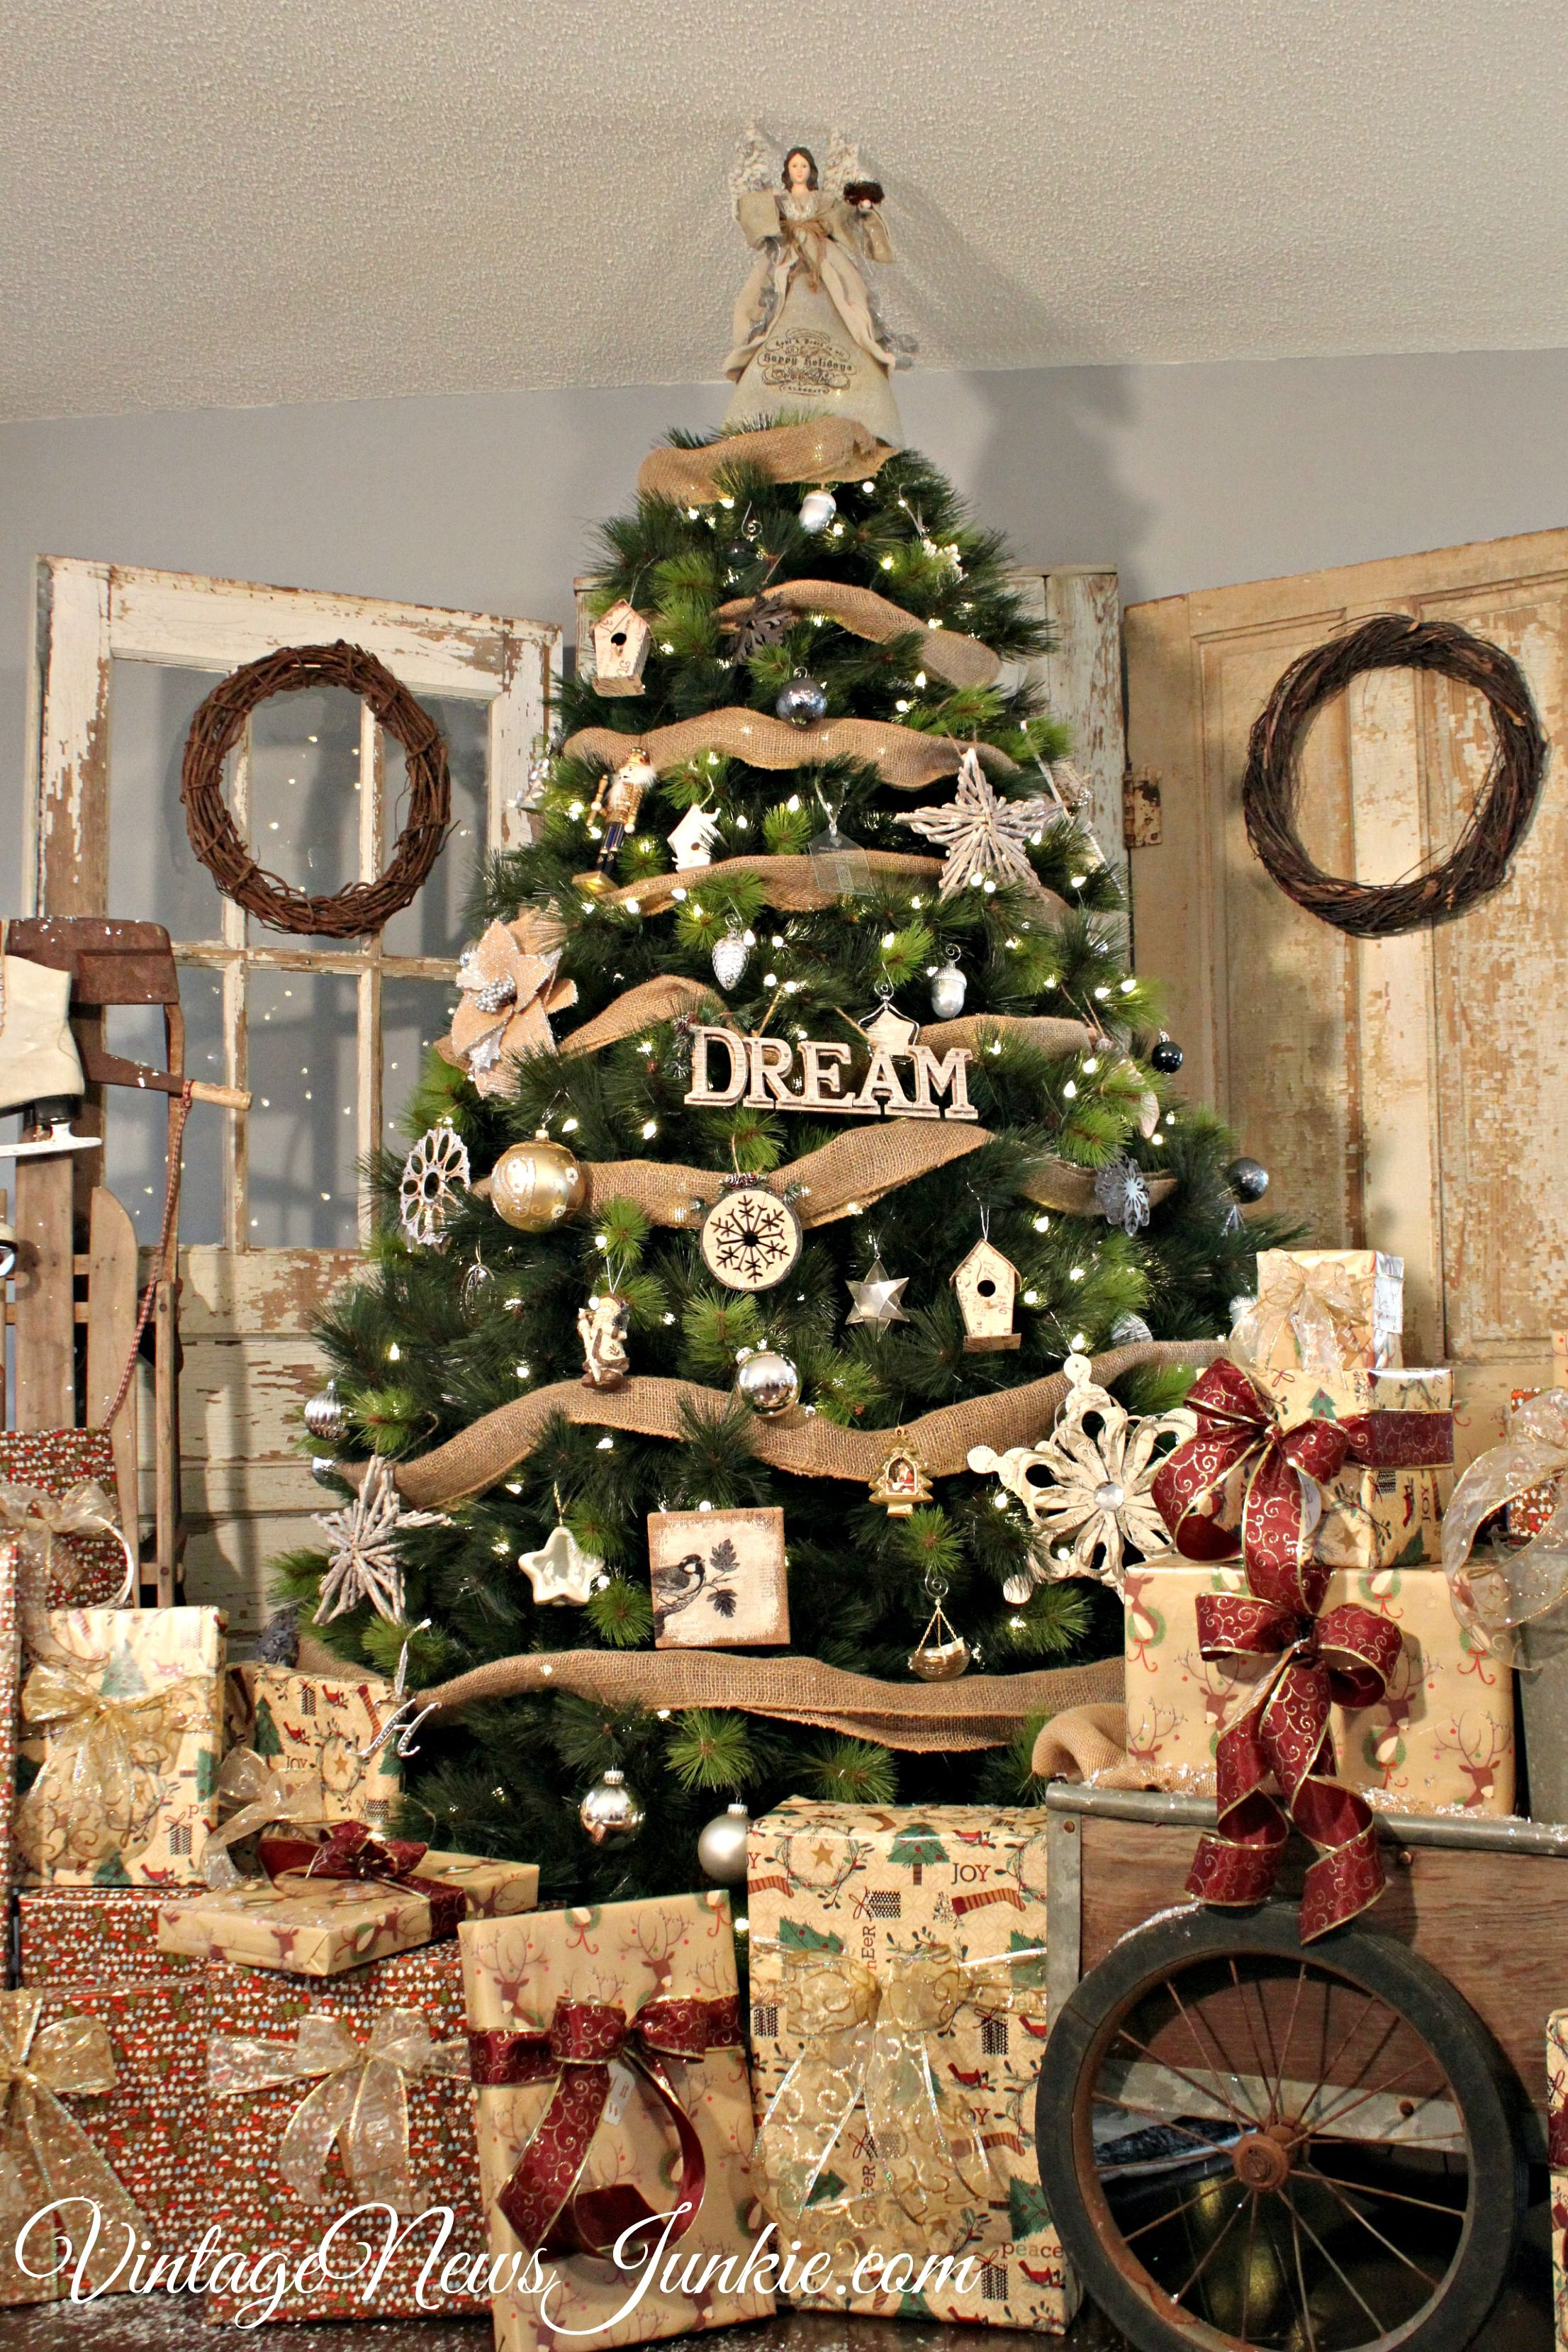 Vintage Rustic Christmas Tree With Old Doors #ChristmasTree #Holiday  #OldDoors By Vintage News Junkie. Www.vintagenewsjunkie.com